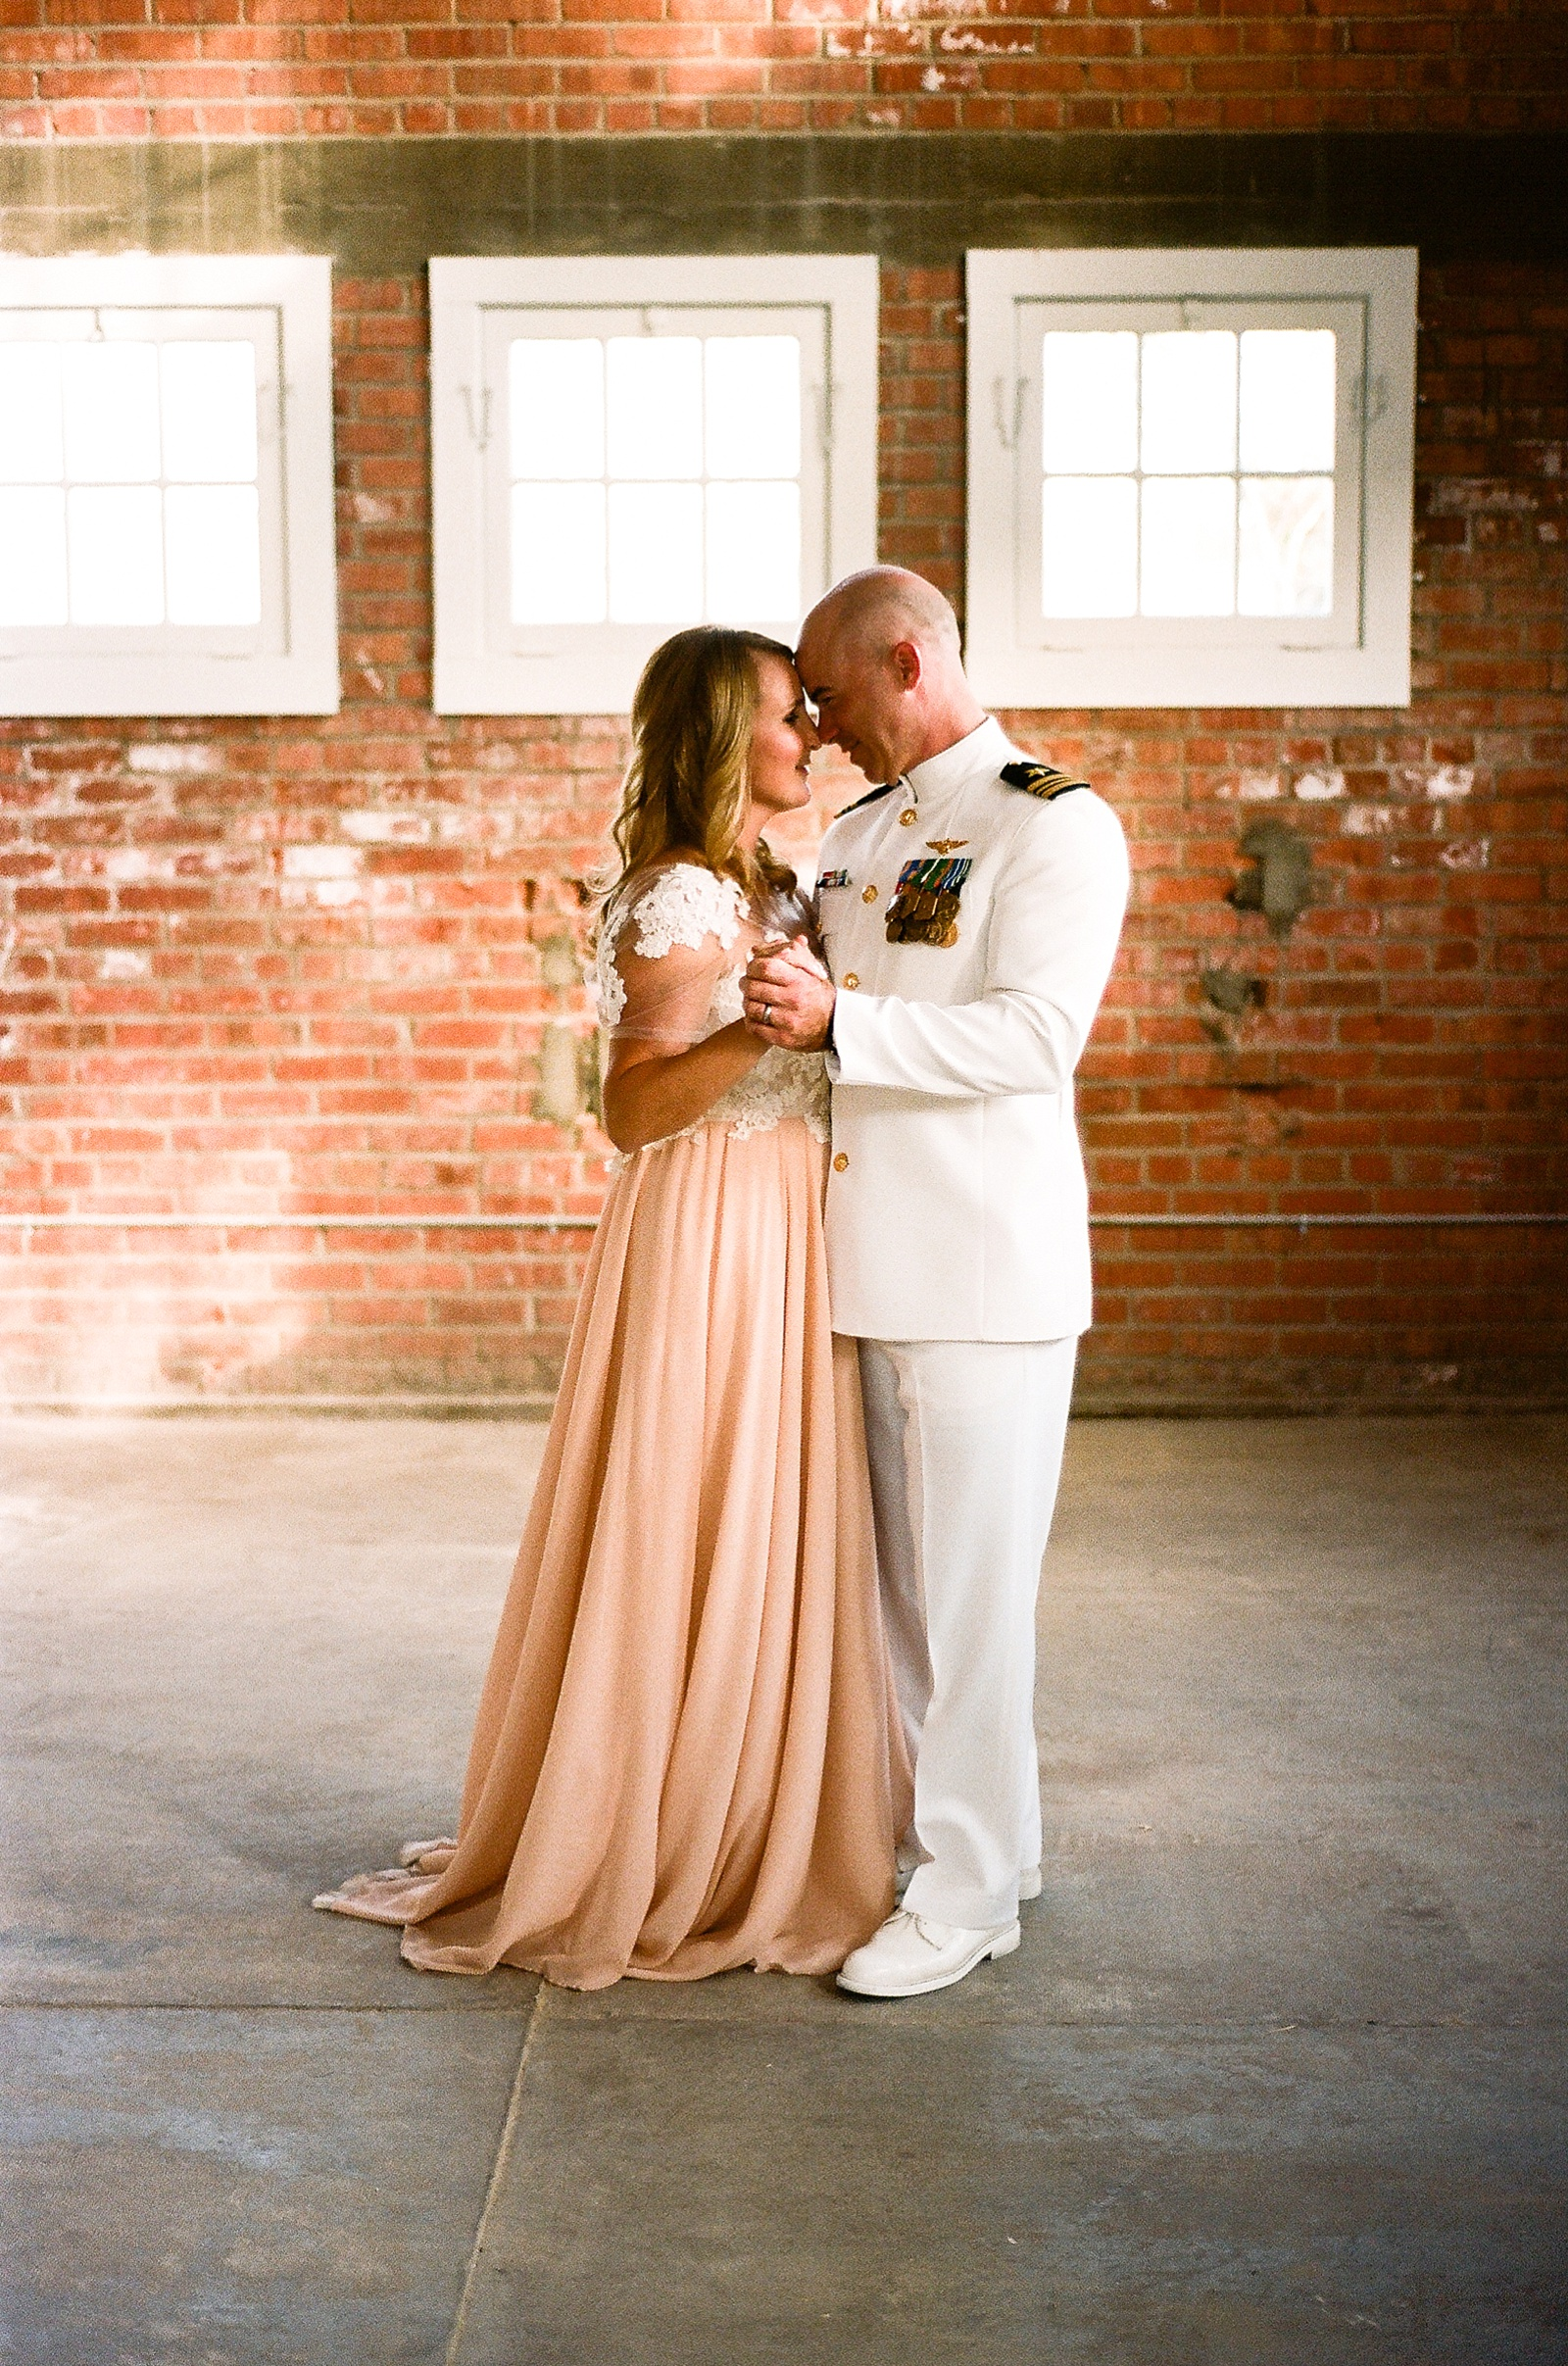 V&V Wedding at 828 by Lauren Nygard_film-016